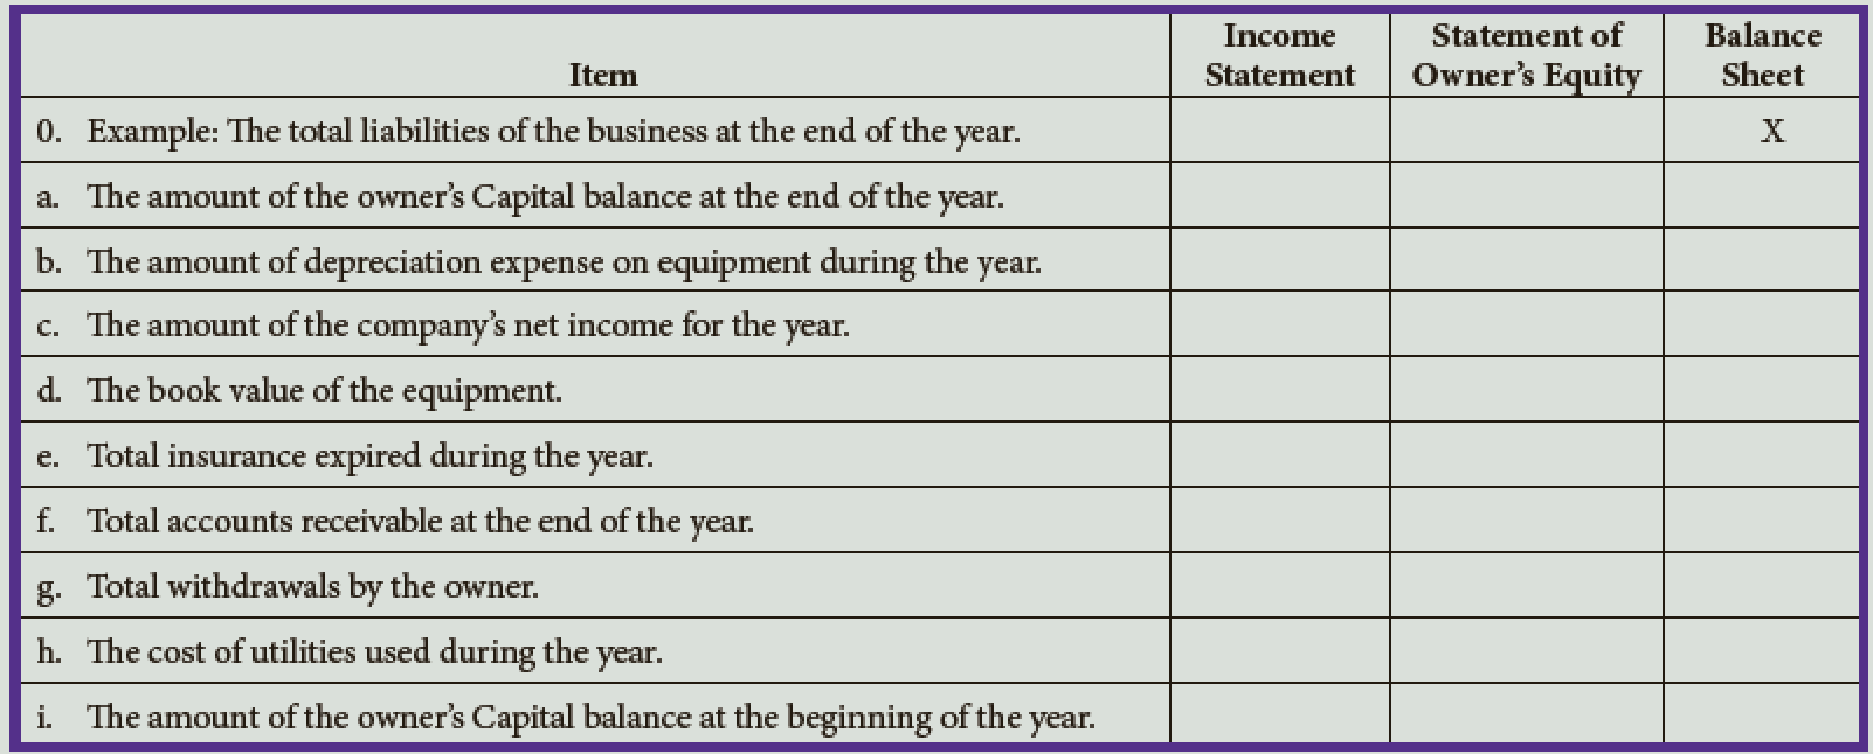 Chapter 5, Problem 9E, Indicate with an X whether each of the following would appear on the income statement, statement of